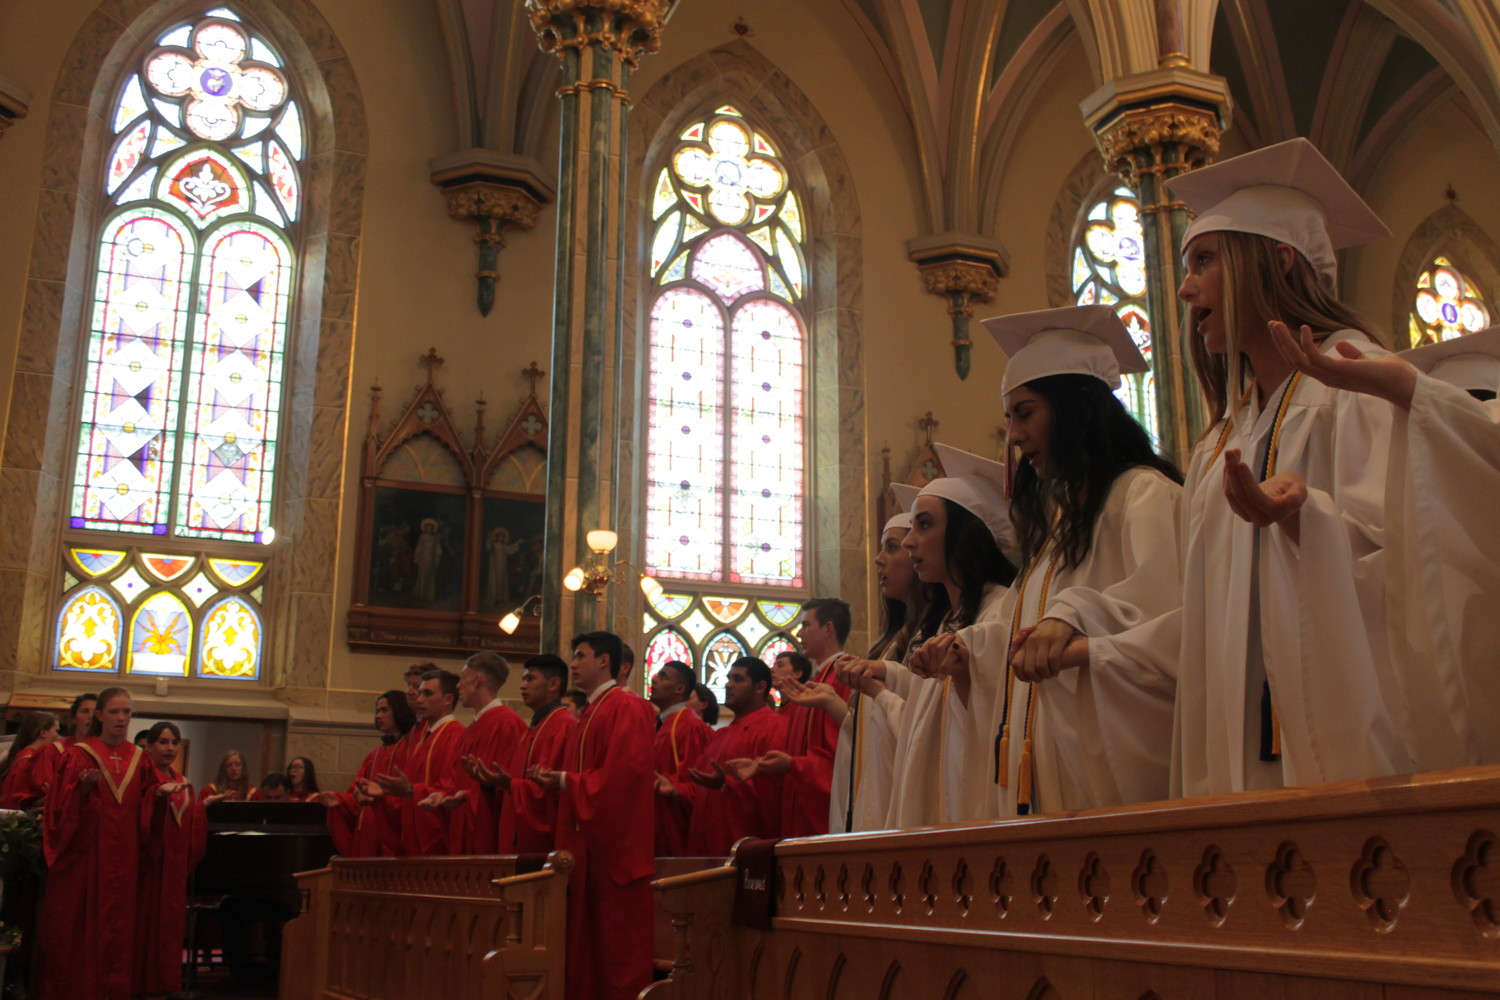 The 33 members of the Class of 2018 of Sacred Heart High School in Sedalia worship God together for the last time as a students of the school during their Baccalaureate Mass May 11 in Sacred Heart Church.